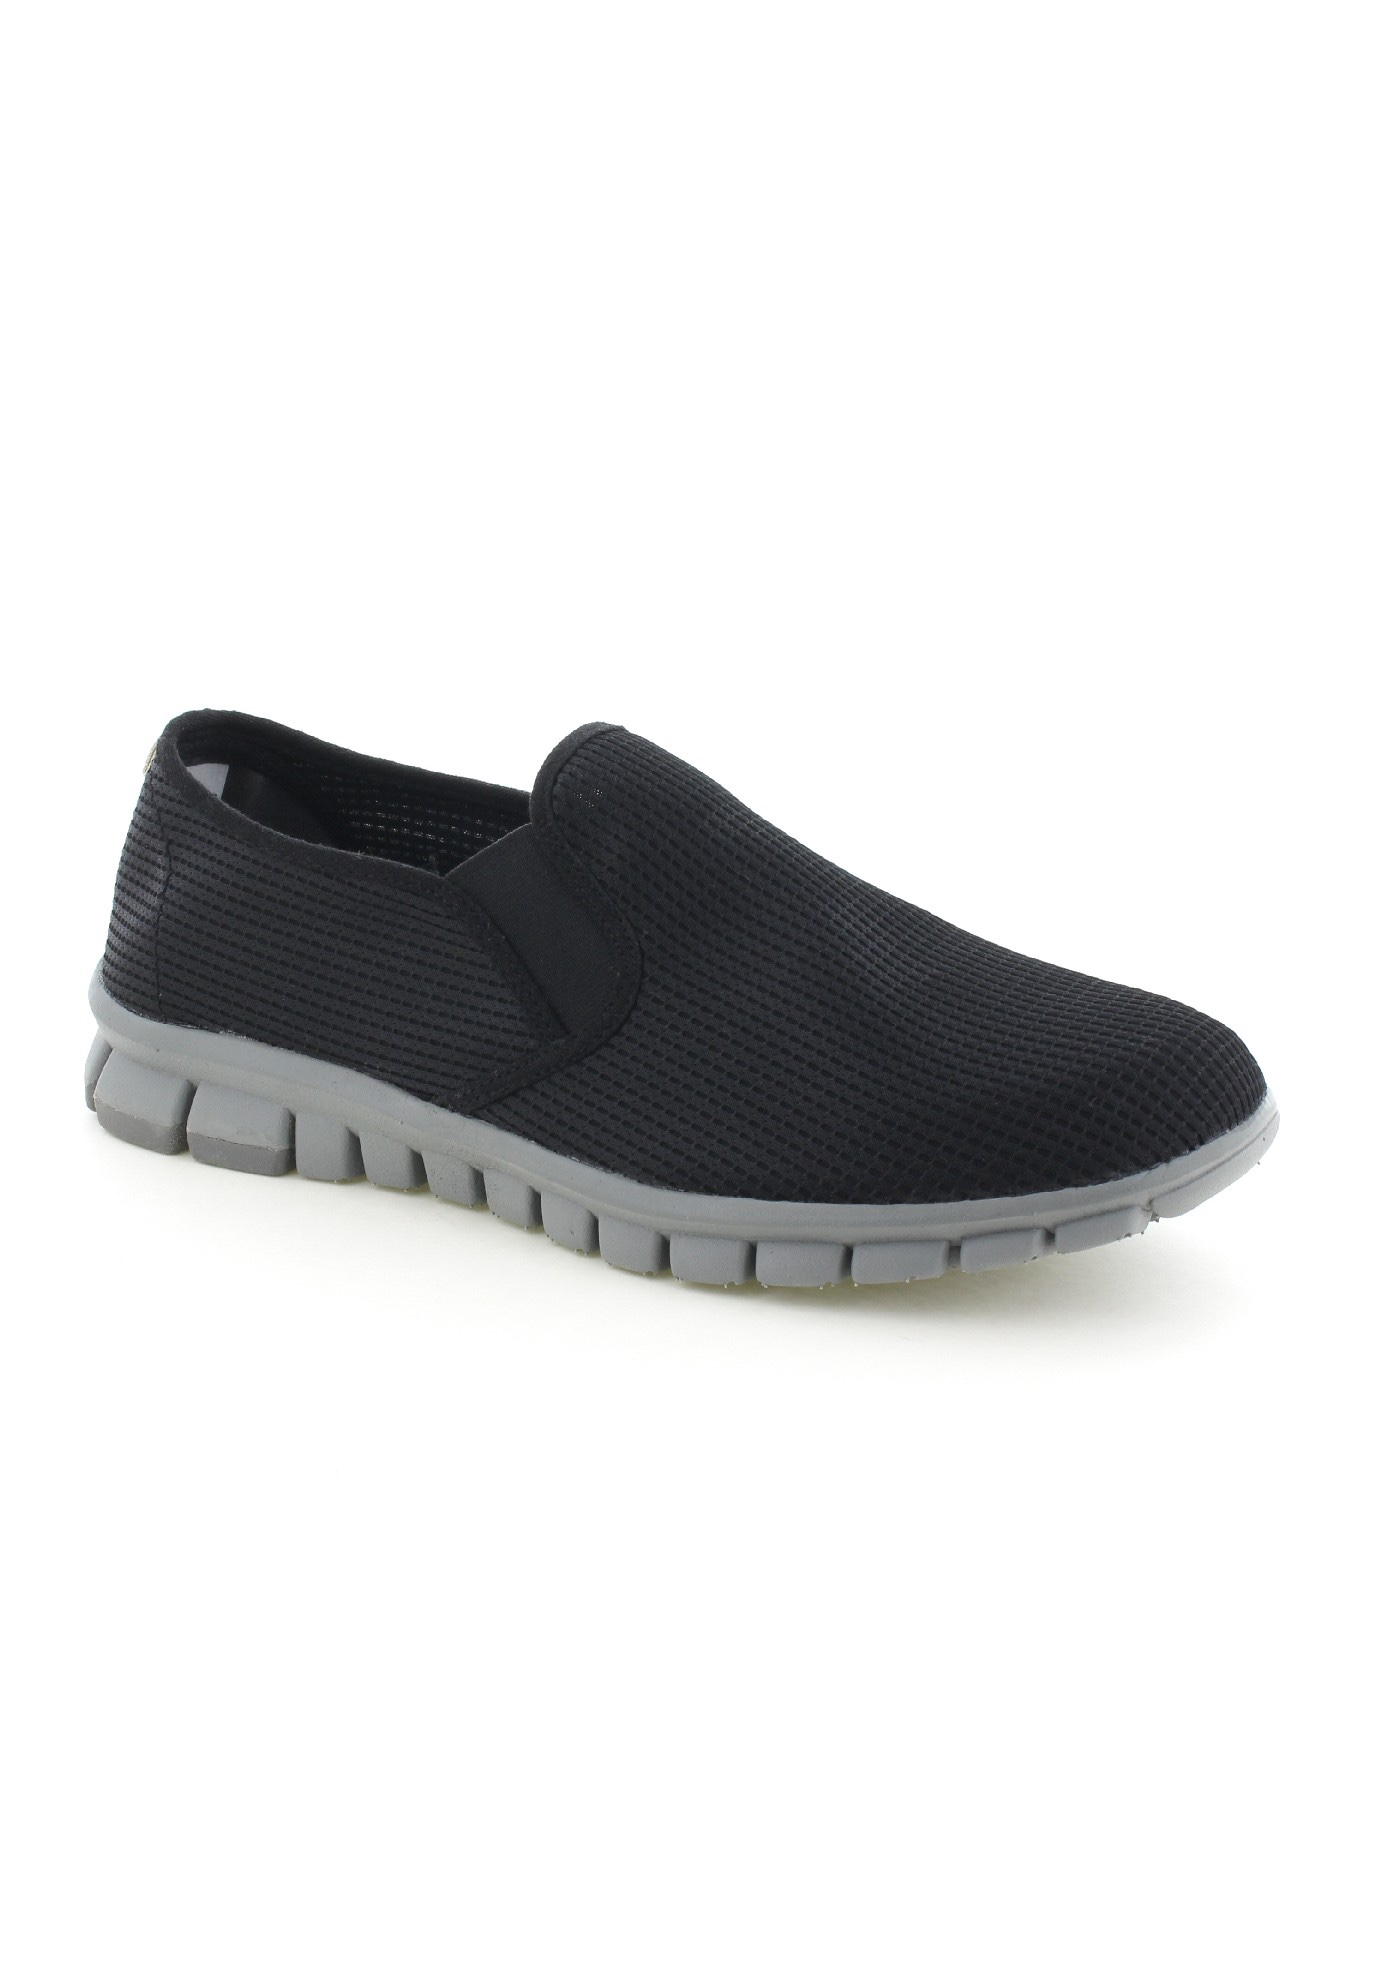 Deer Stags® Wino Mesh Slip-On Sneakers,